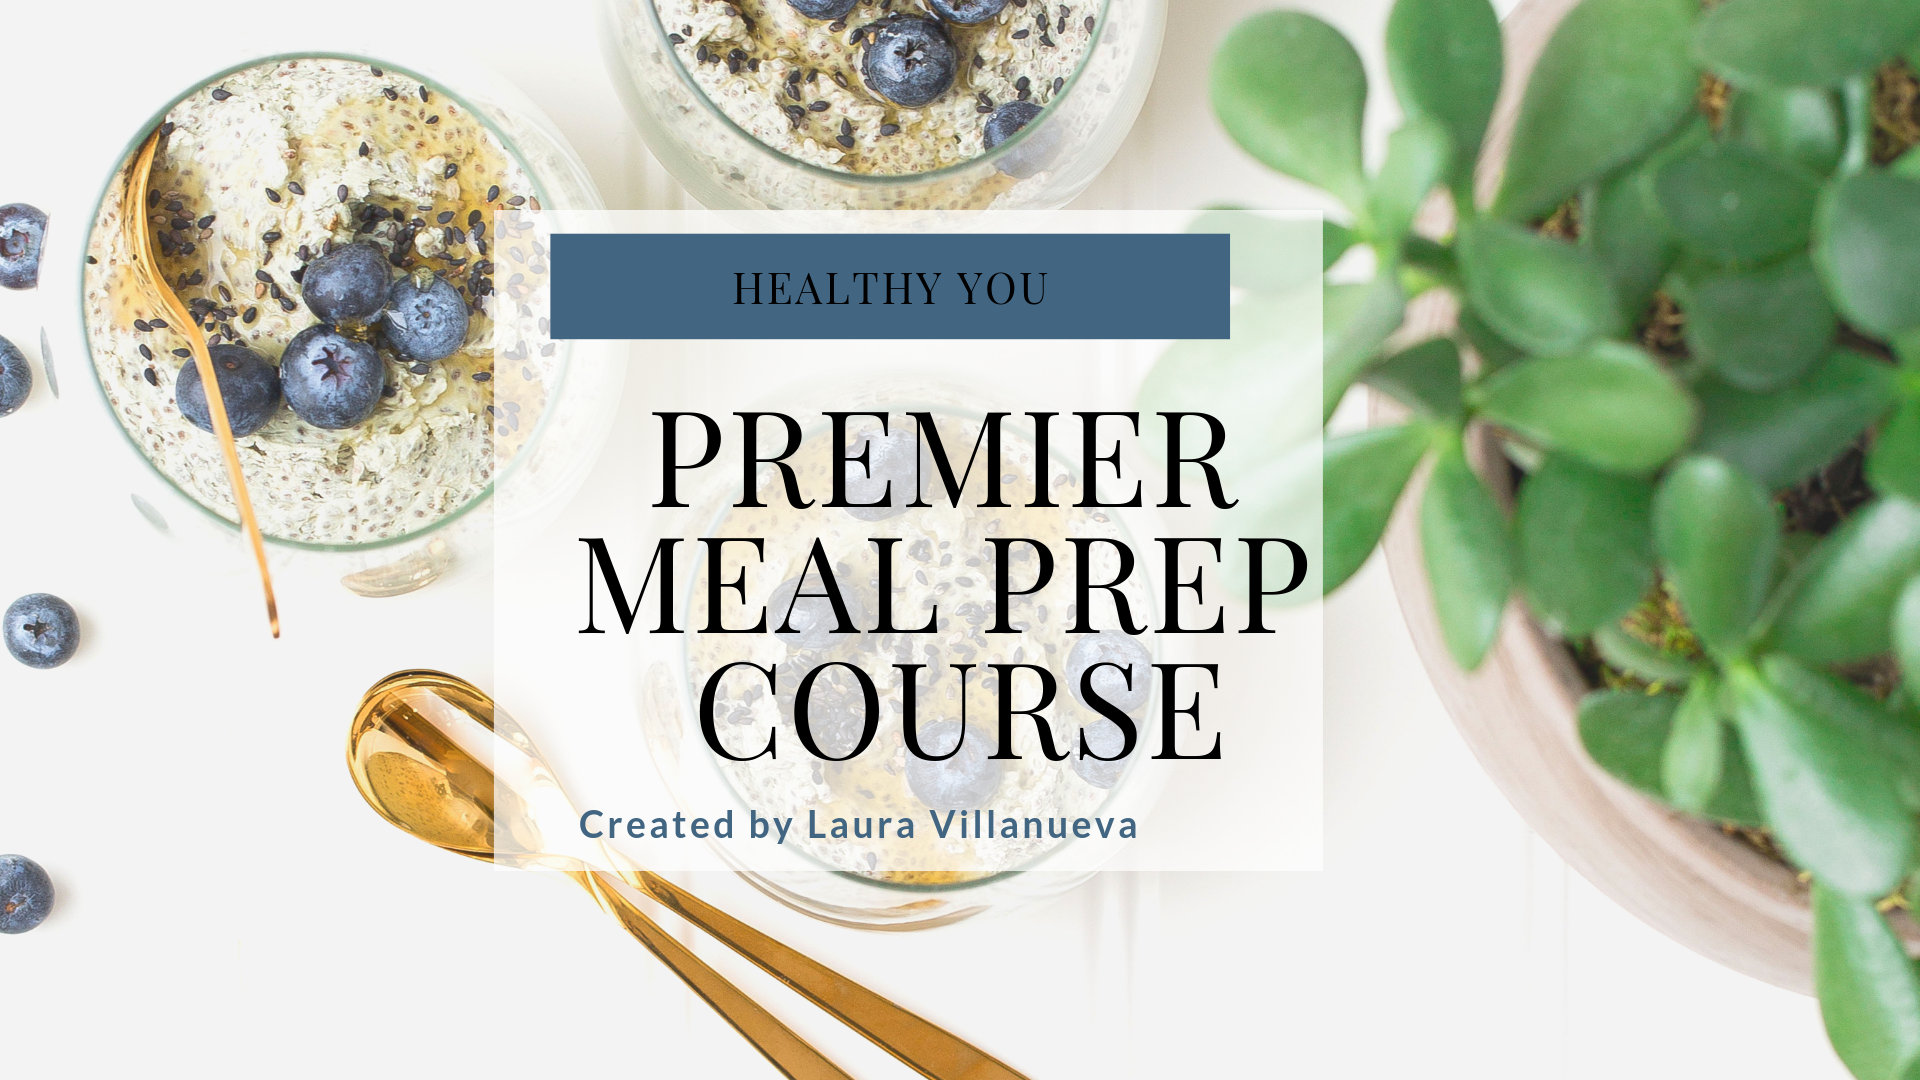 Healthy You - Premier Meal Prep Course